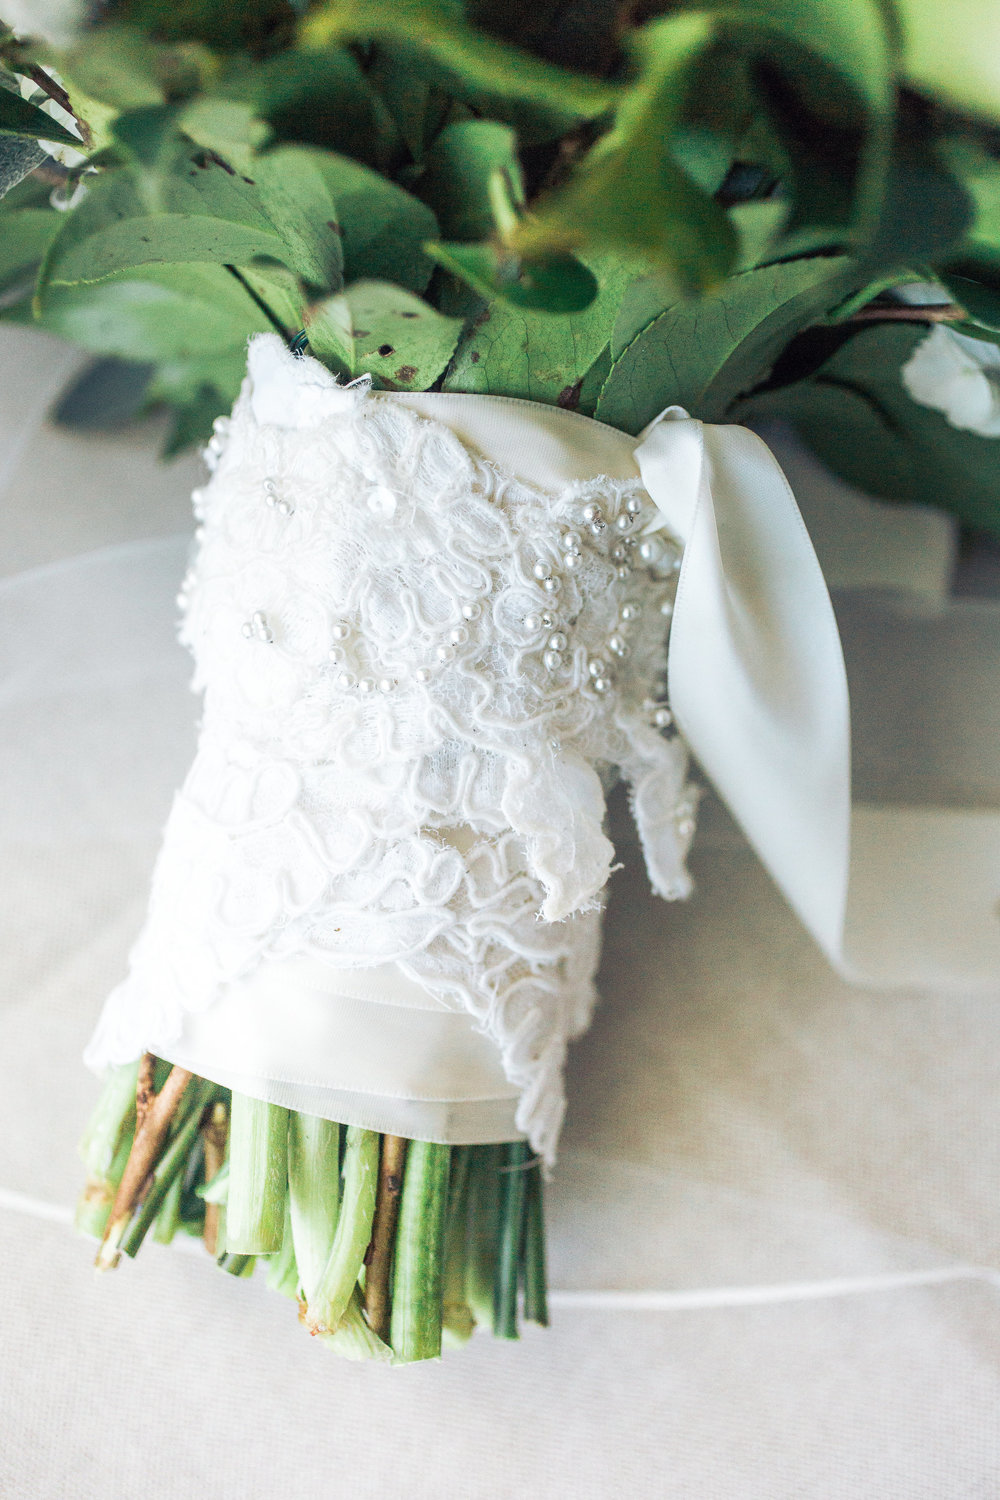 Myrtle Beach bride's bouquet wrapped in lace from her mother's dress  //  A Lowcountry Wedding Magazine & Blog